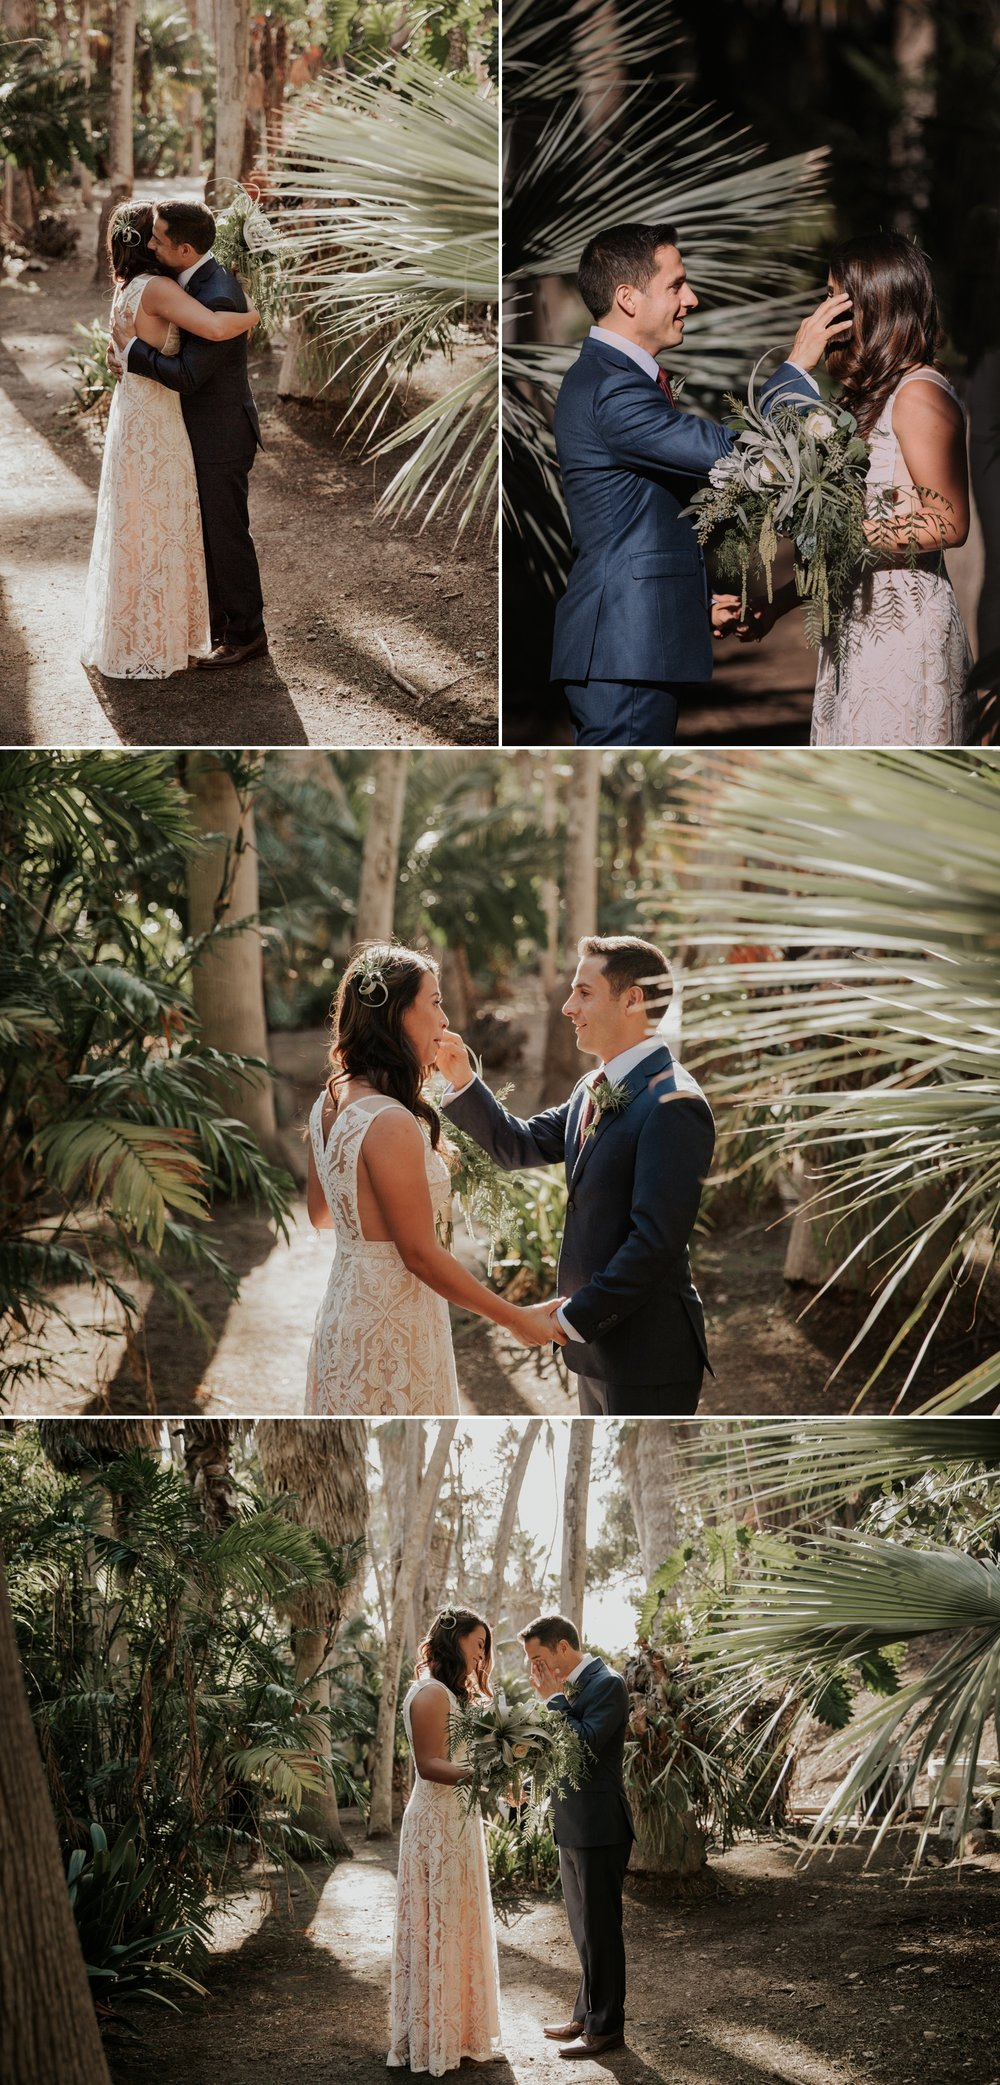 First look in Balboa park by San Diego wedding photographer Paige Nelson